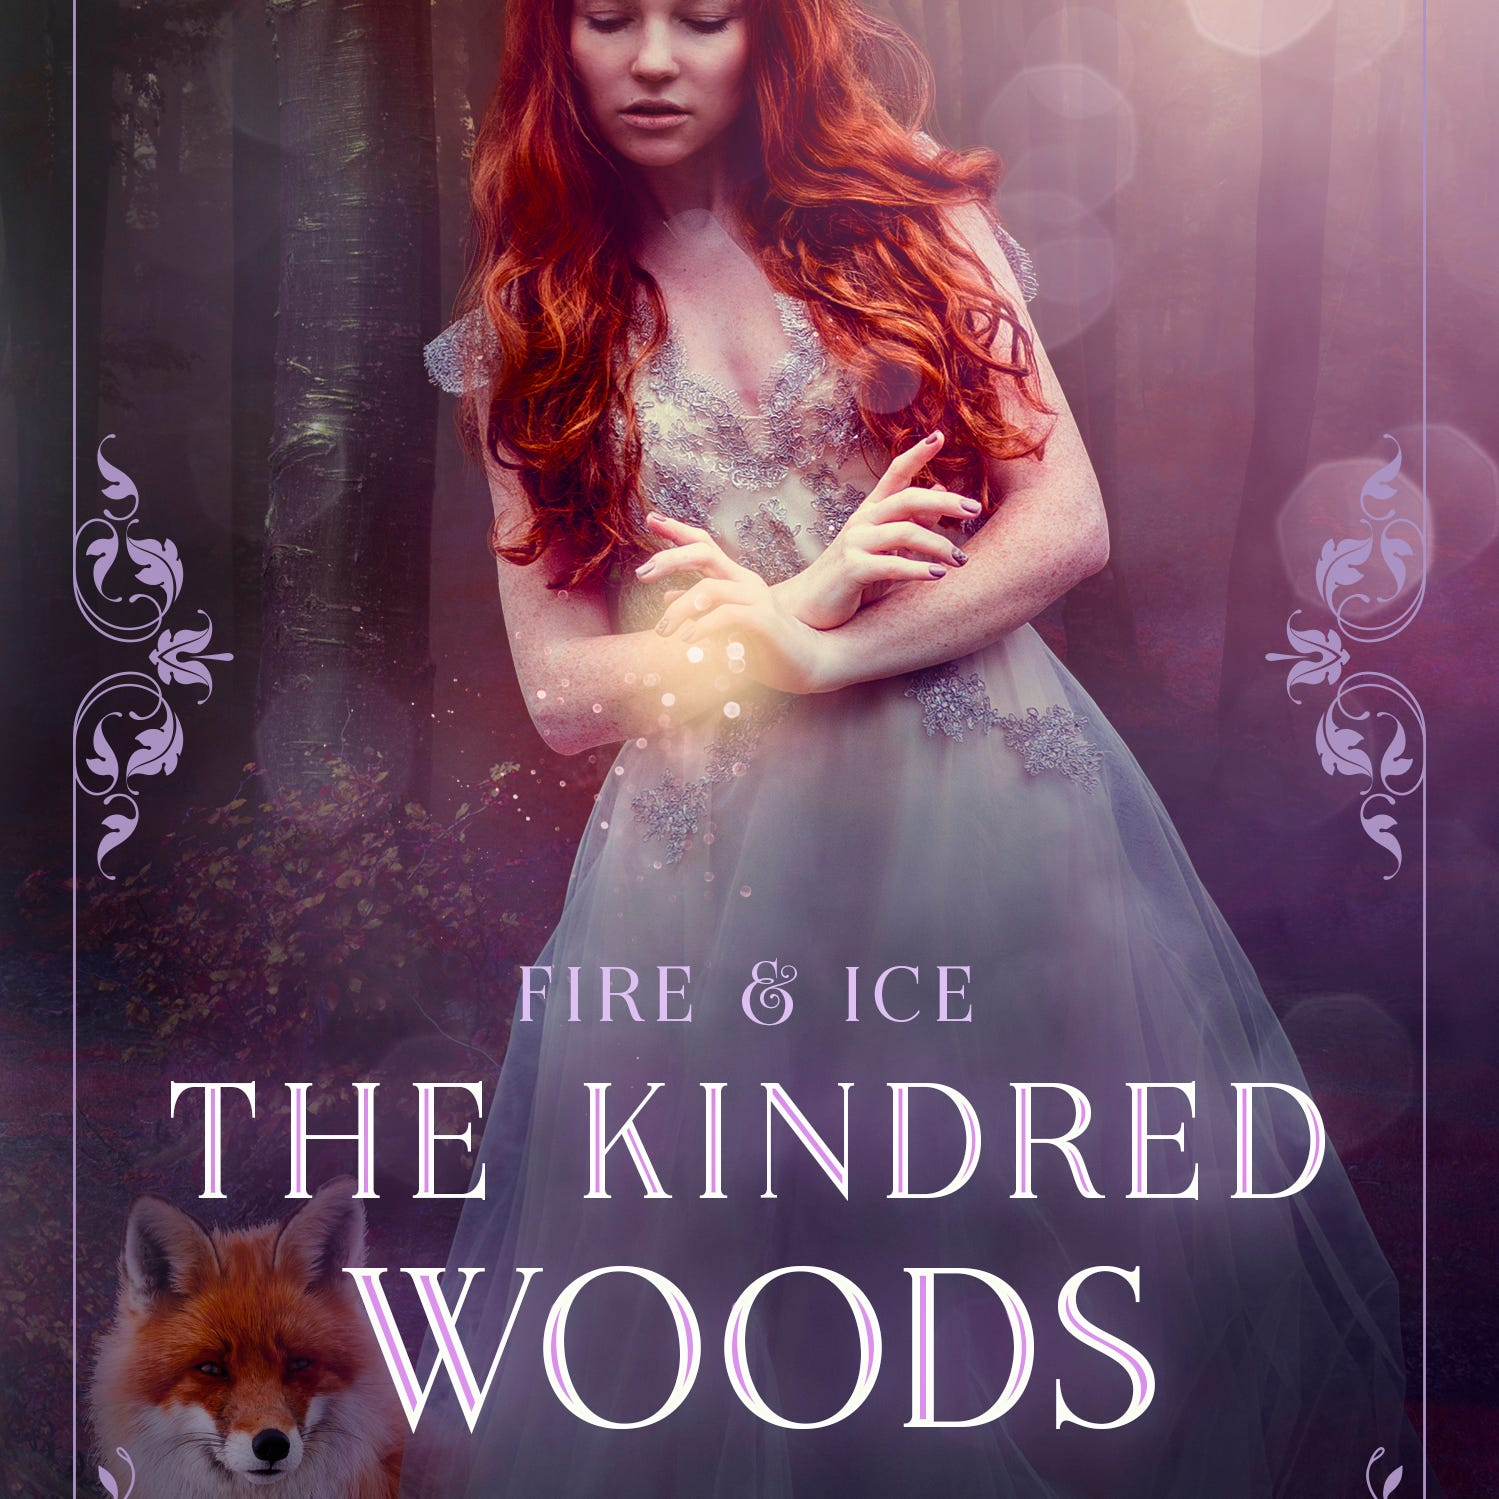 Teen author releases third book in 'Fire & Ice' fantasy fiction book series